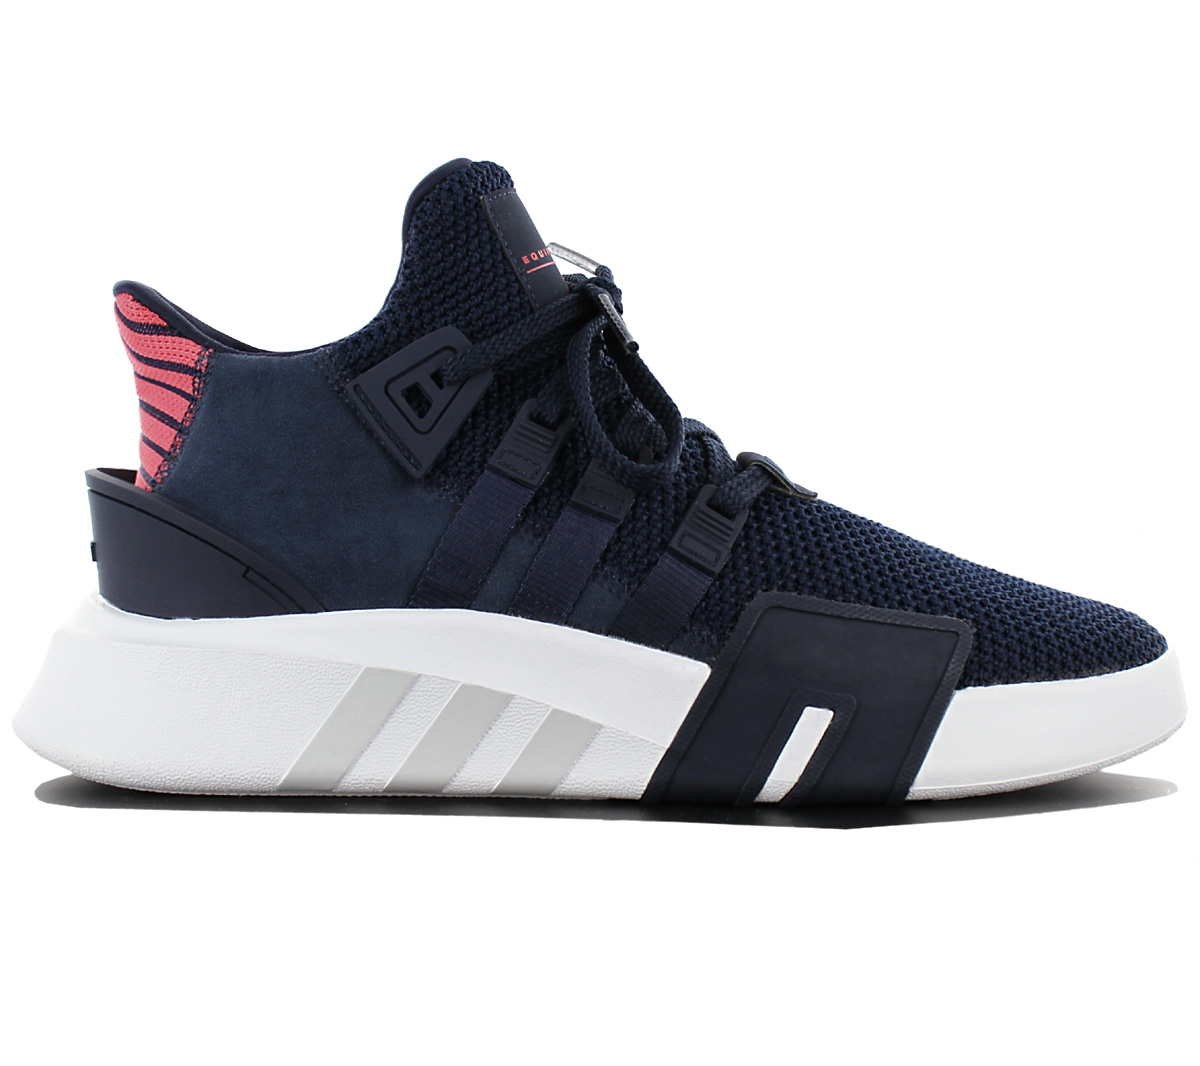 official photos dff26 0e218 Adidas Equipment Bask Adv Mens Shoes Navy Blue Sneaker Eqt C